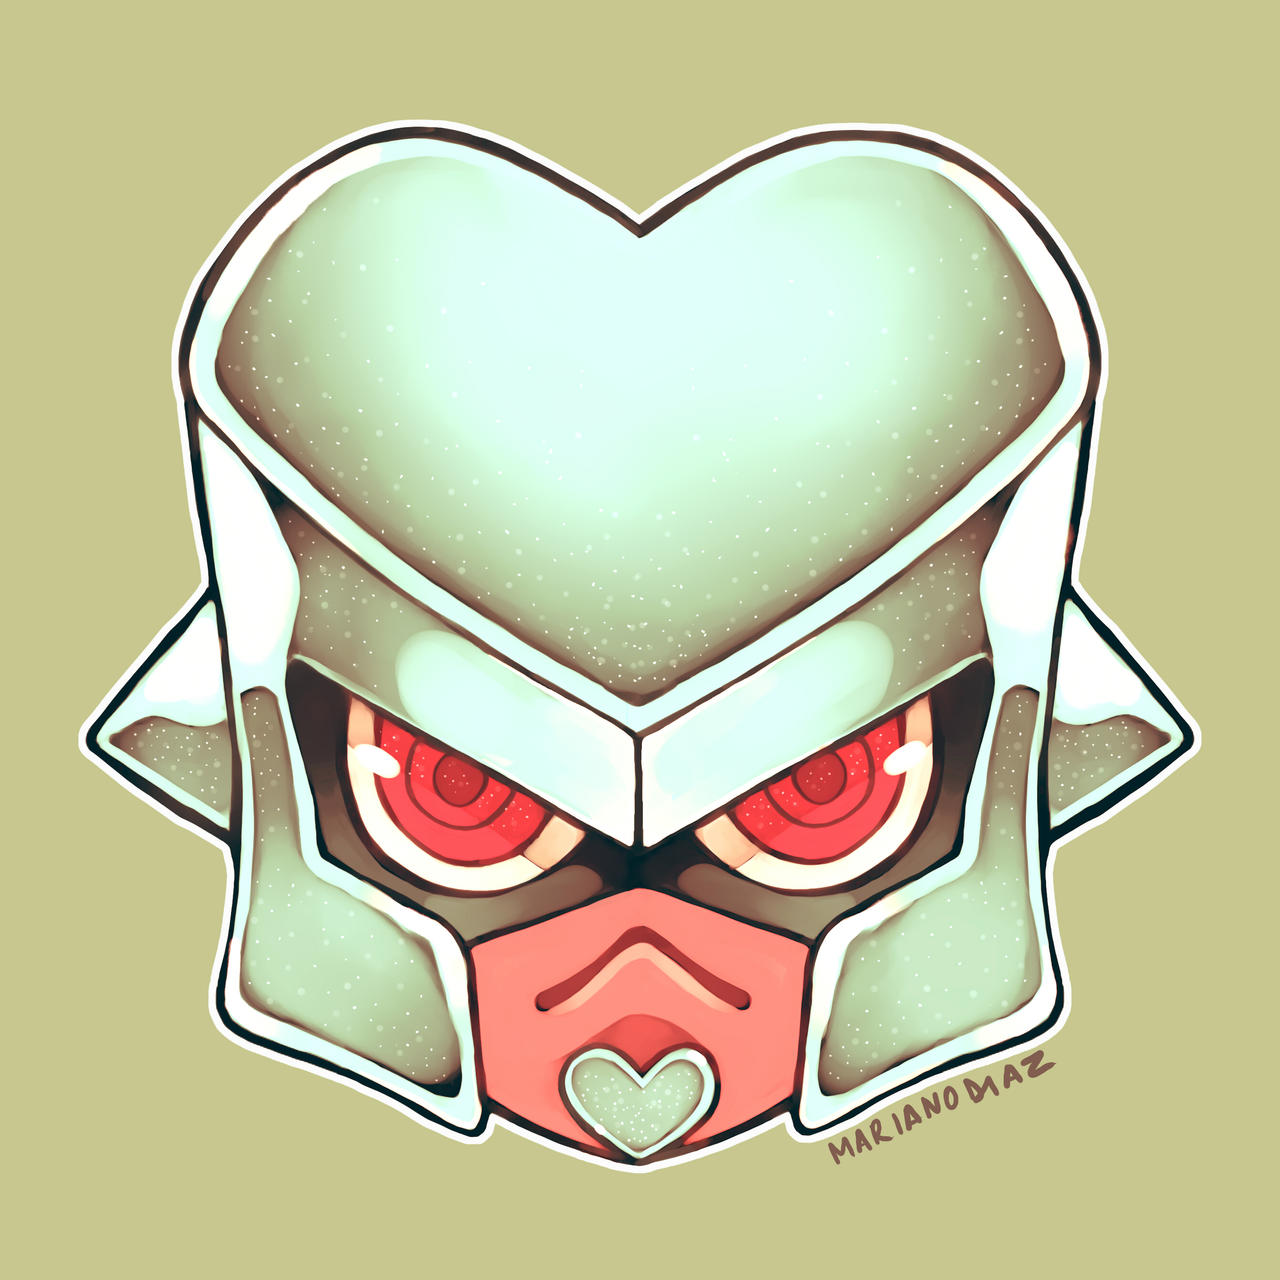 Crazy Diamond Chibi Head By Sinner Moon On Deviantart In the midst of that, your power is kinder than anything else. crazy diamond chibi head by sinner moon